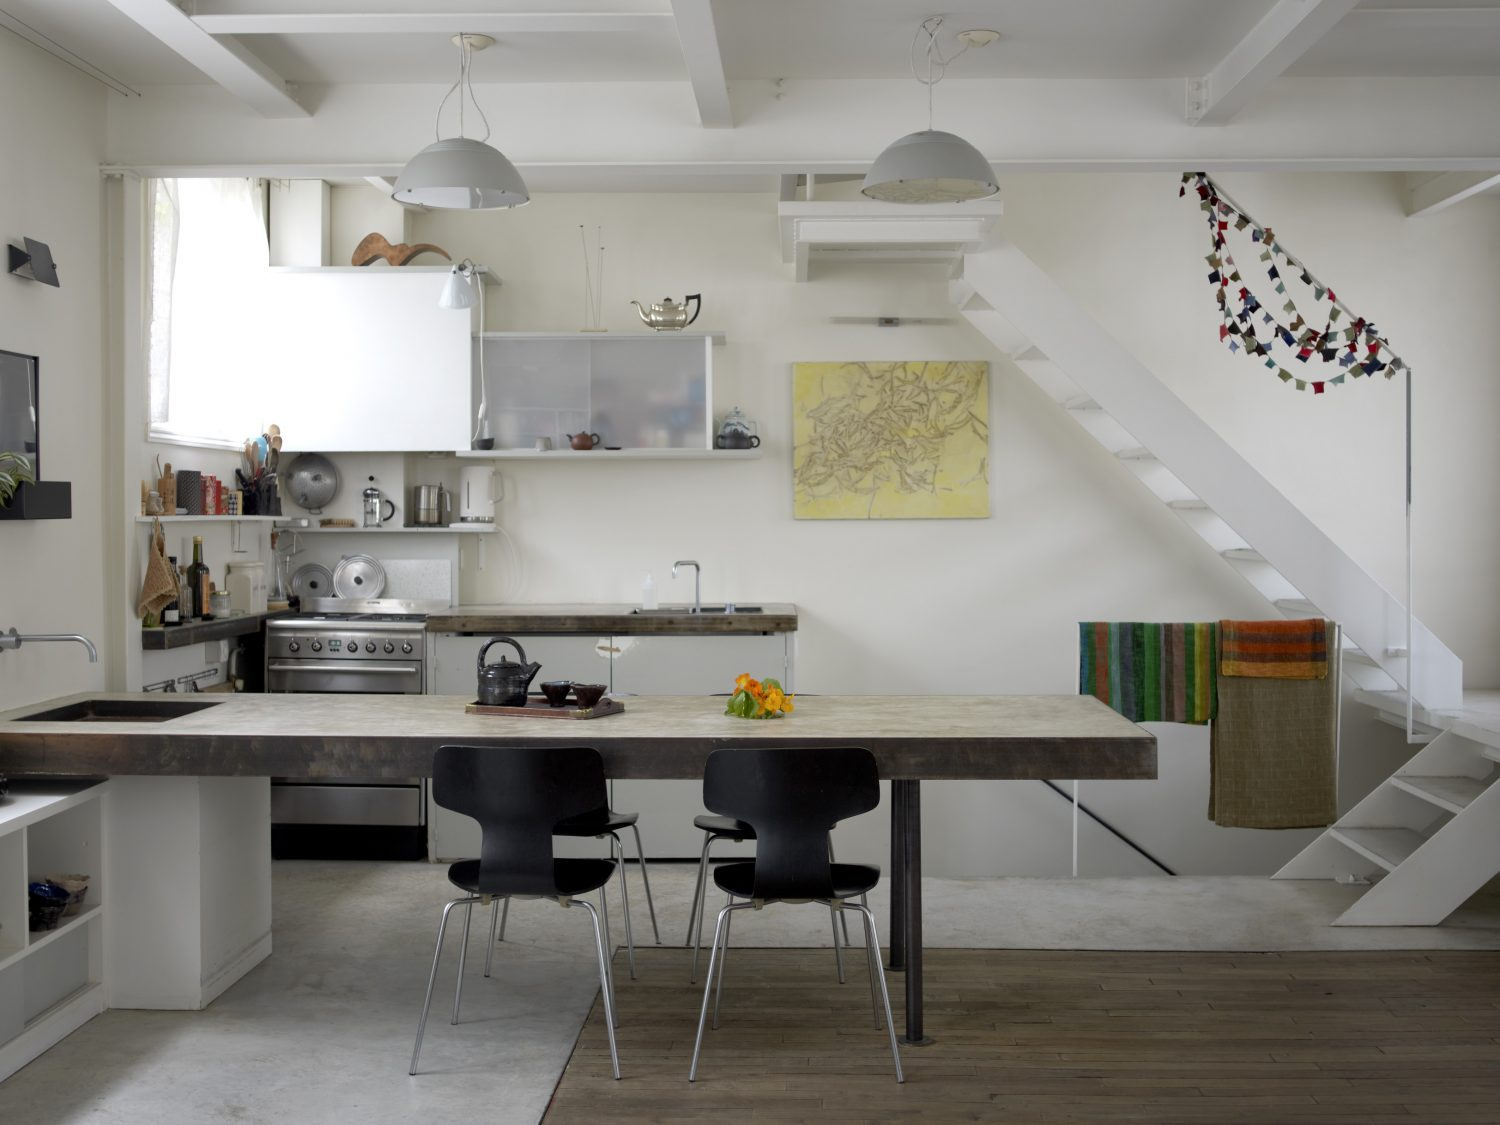 Smart Spaces: In the Parisian home of artist Cécile Daladier and architect/designer Nicolas Soulier (above), the kitchen sink is integrated into the dining table, doubling up as a cook's work surface when not an eating area. Quirky finds, like a silver Aladdin's teapot on top of the cabinets and the handmade bowls, create areas of visual interest. Overall, they've kept the colour scheme white, giving this bijou space a sense of airiness.